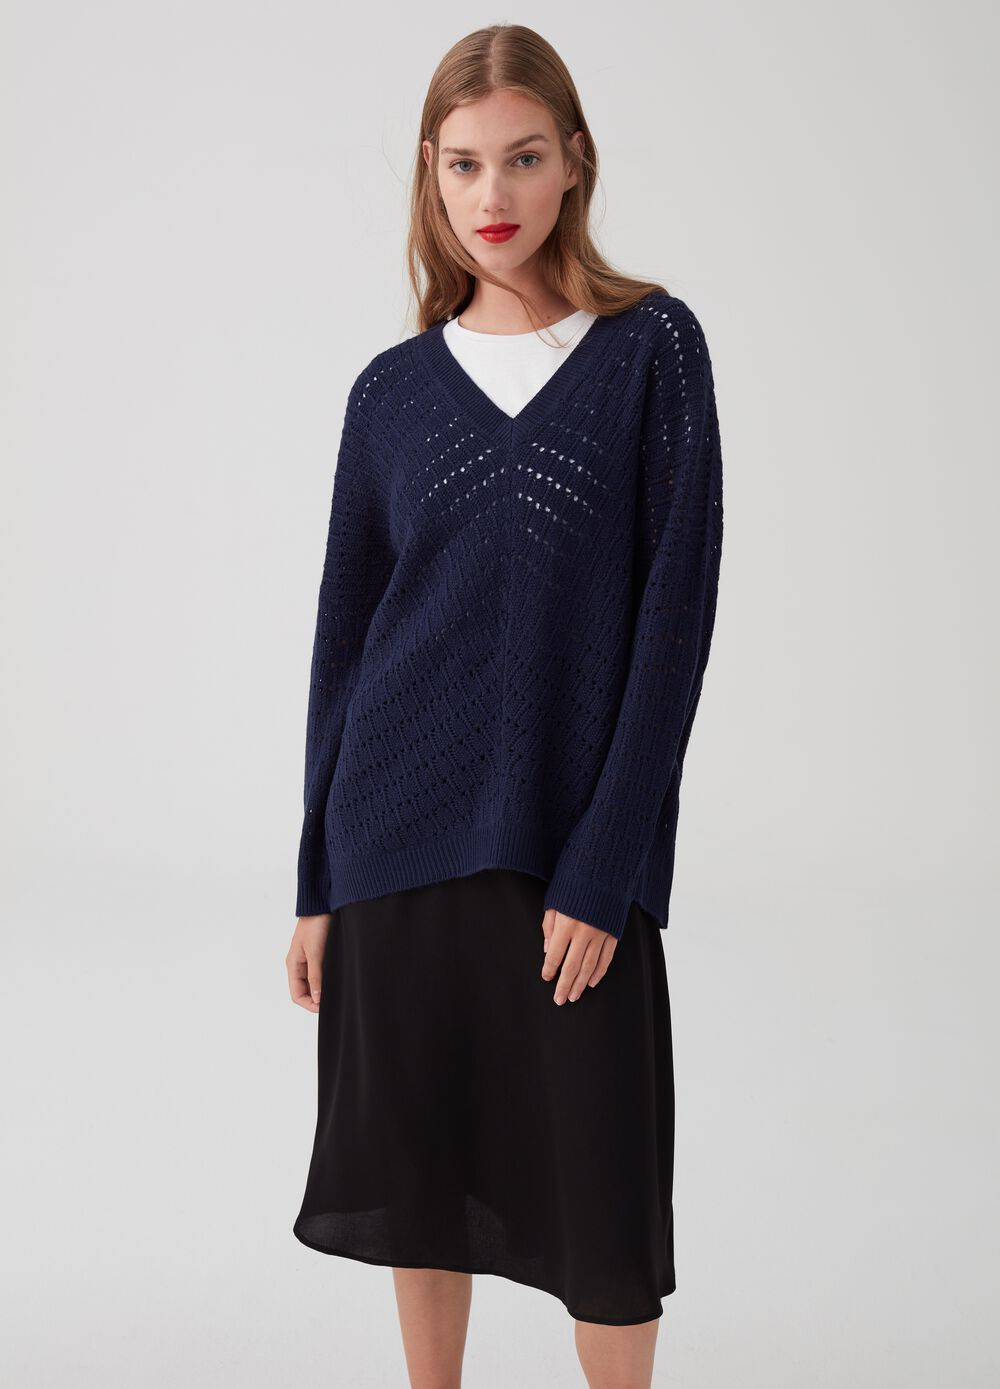 V-neck over-fit pullover with knit design